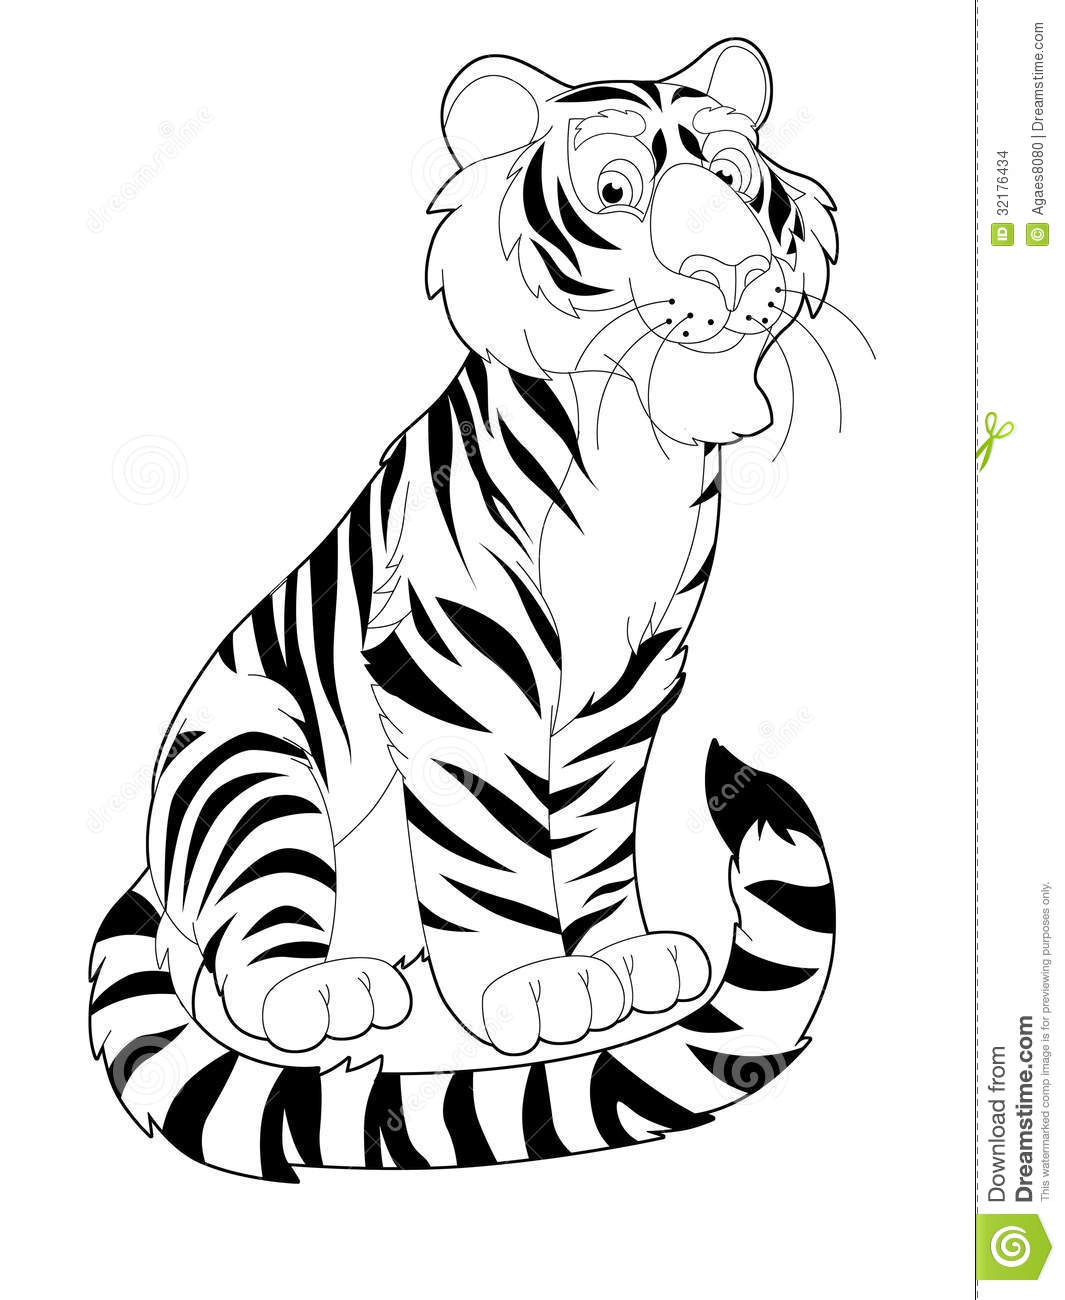 Cartoon jungle animals coloring pages coloring pages for Safari animal coloring pages